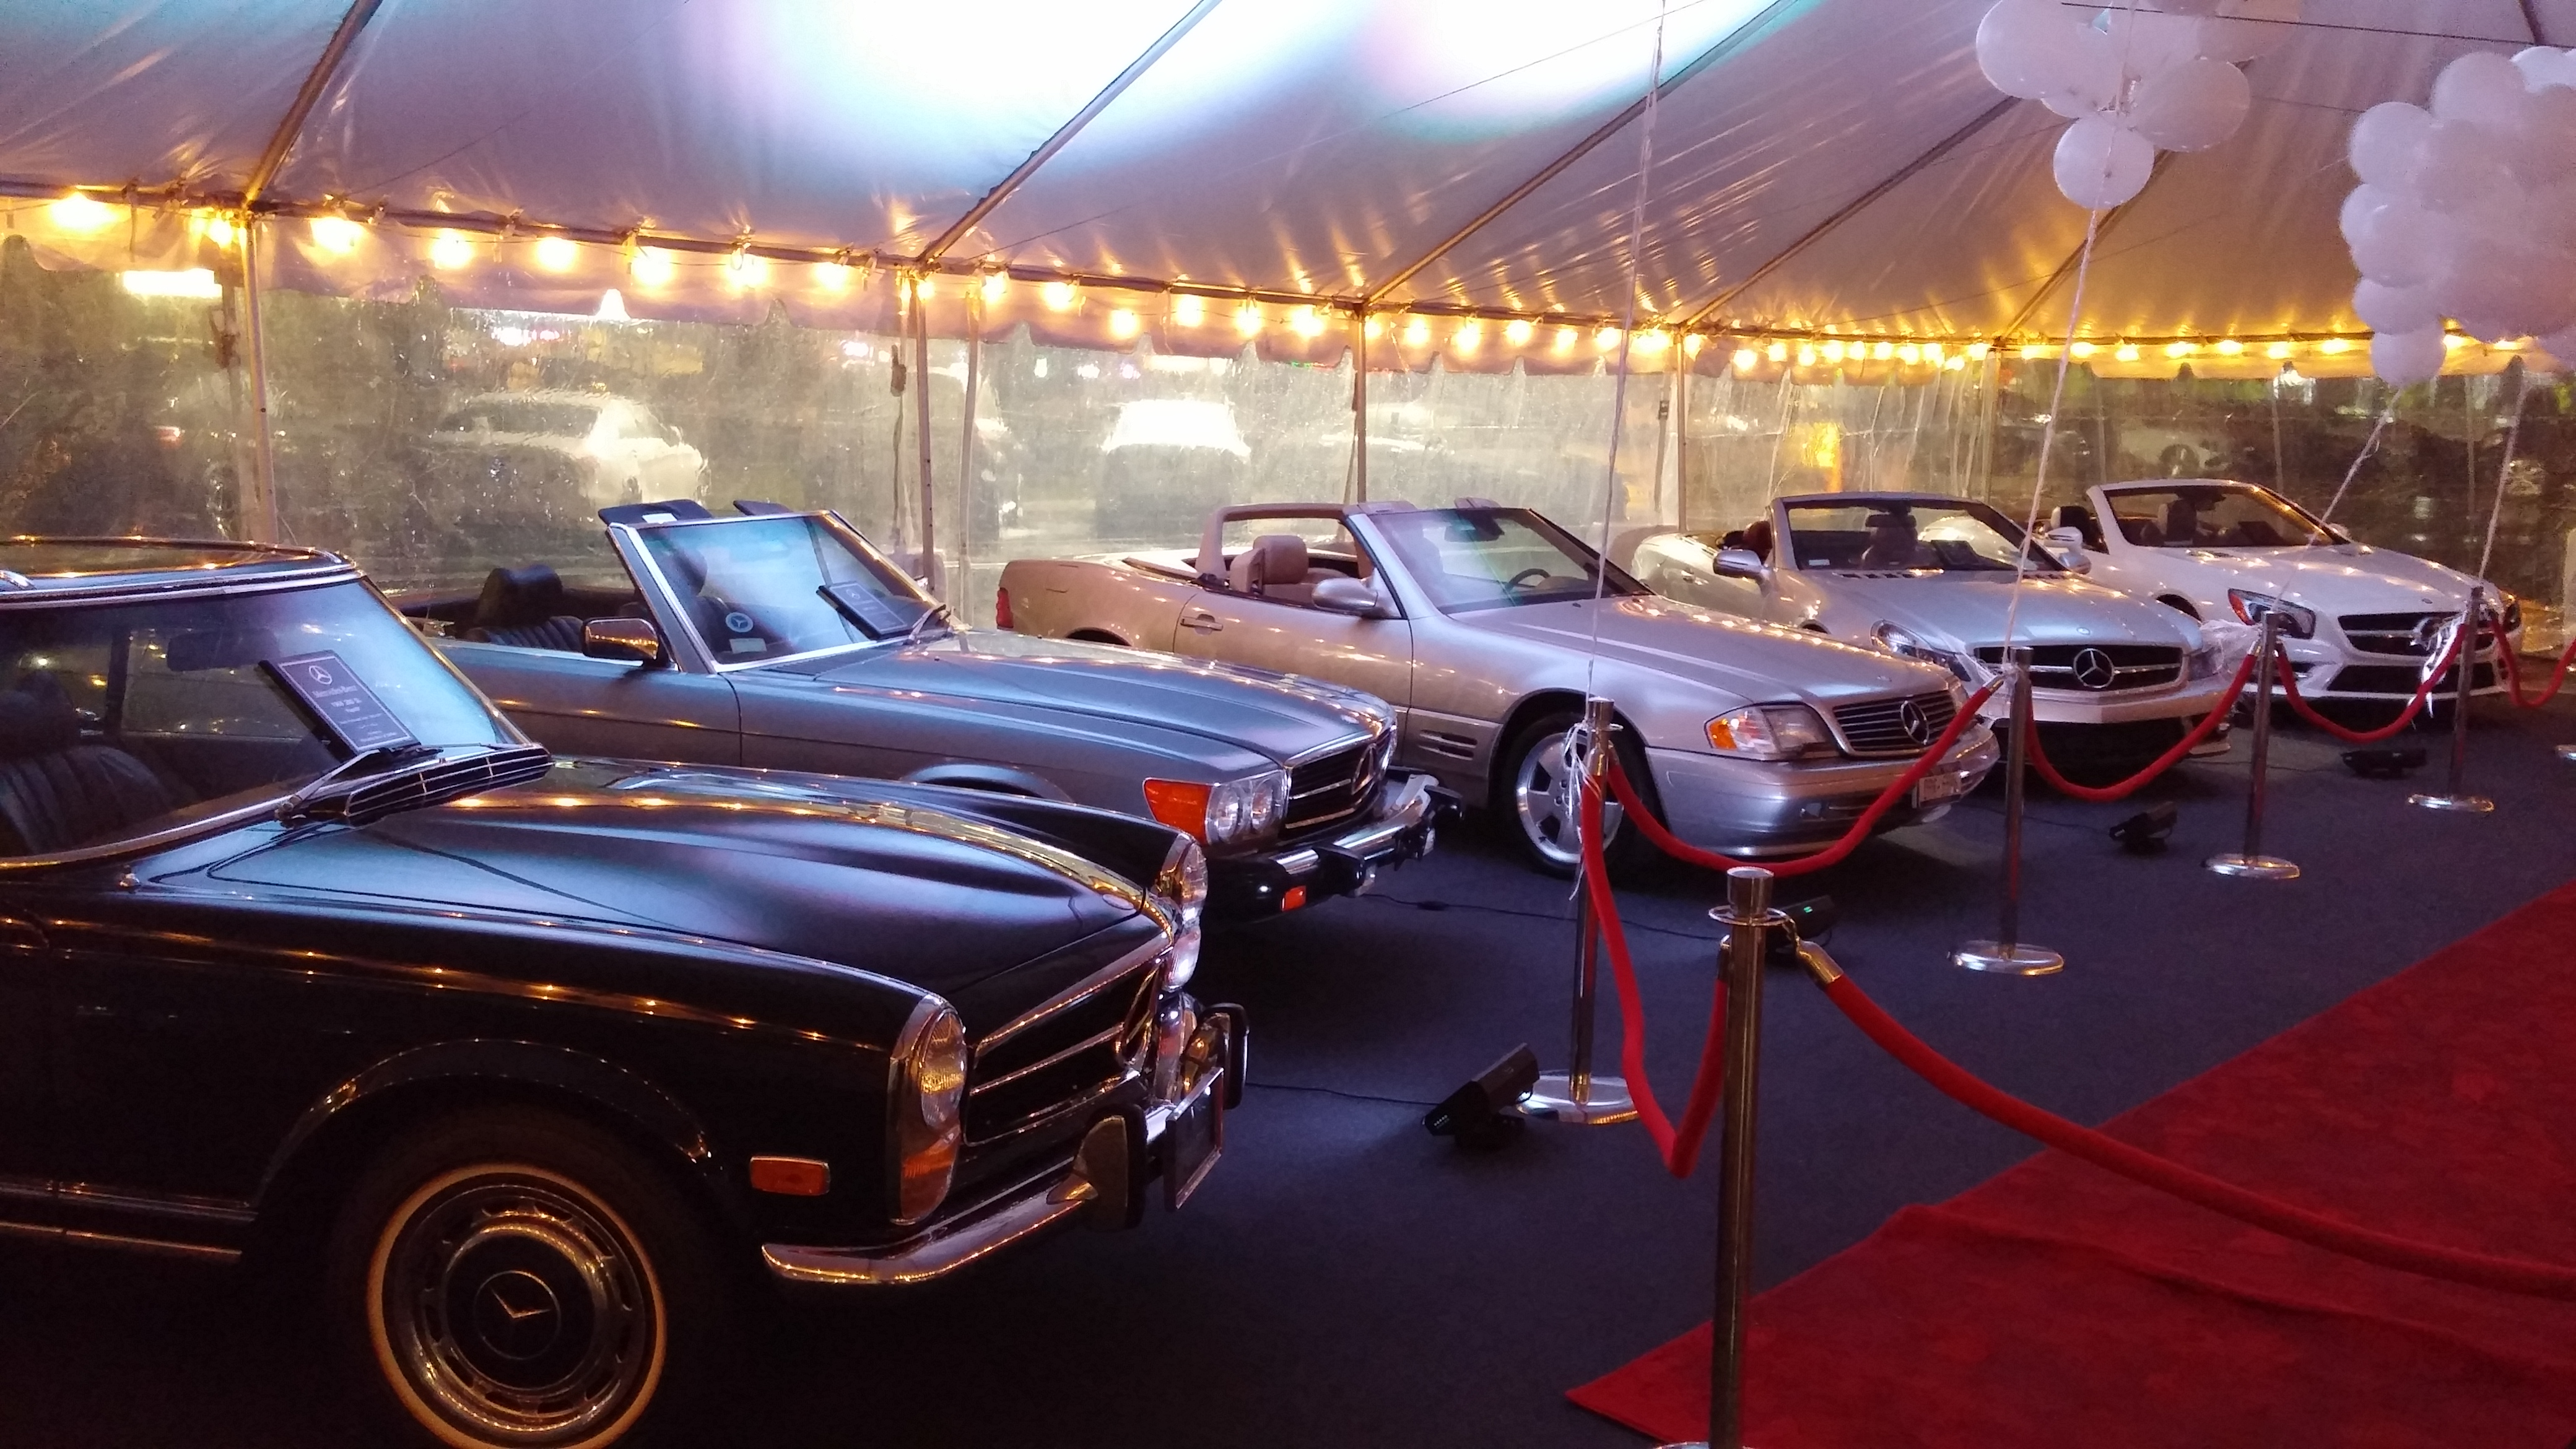 Superior Mercedes Benz Of Buffalo Celebrated Its Fiftieth Anniversary Serving  Western New York. This Accomplishment Is A Testament To The Excellent  Product We ...